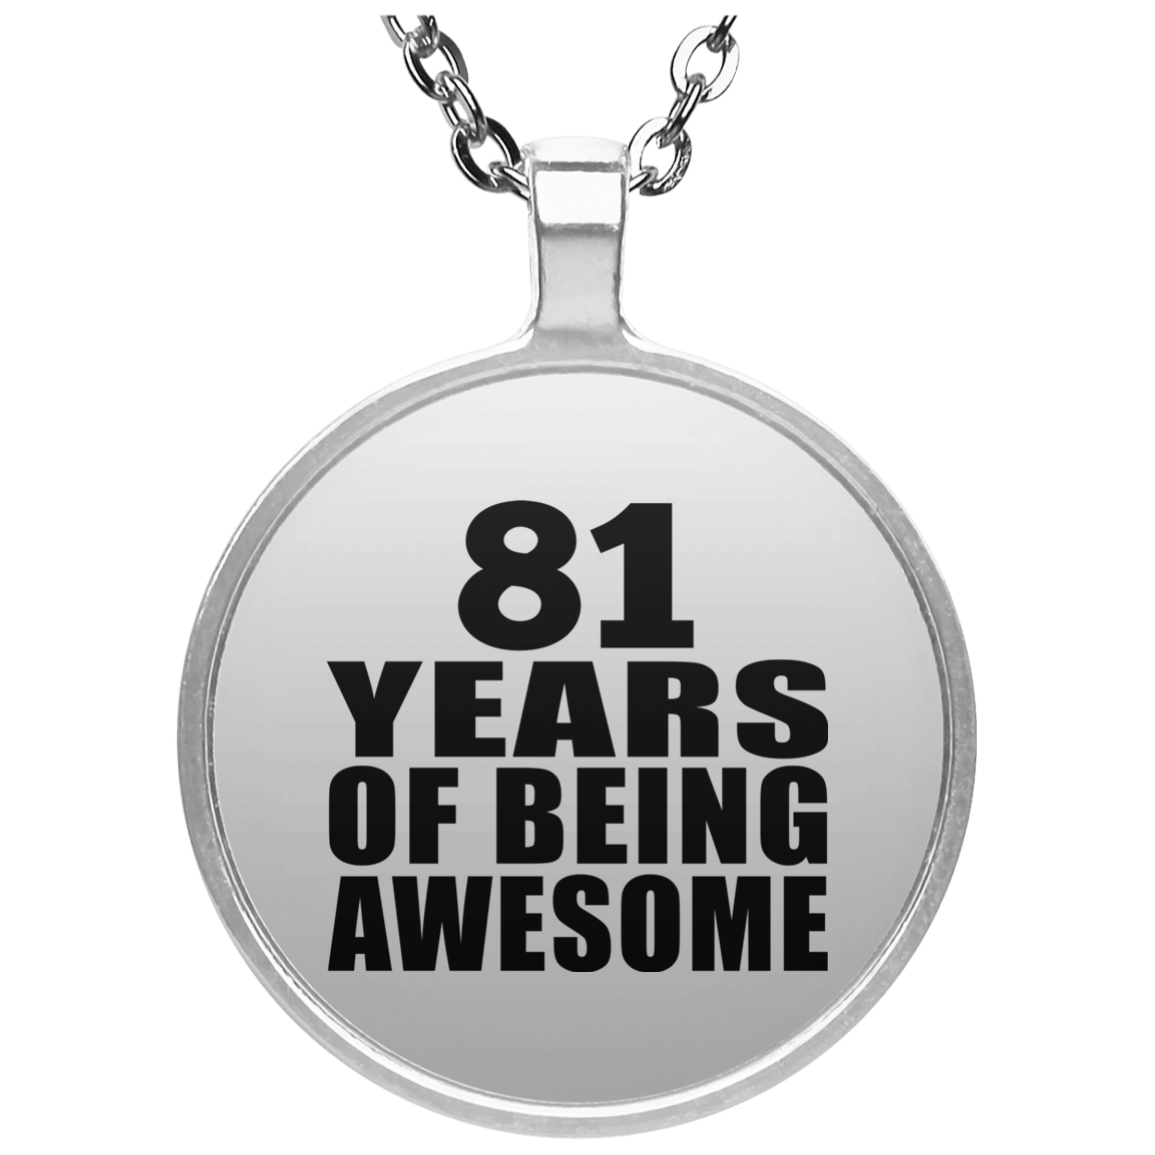 81st Birthday 81 Years Of Being Awesome - Round Necklace